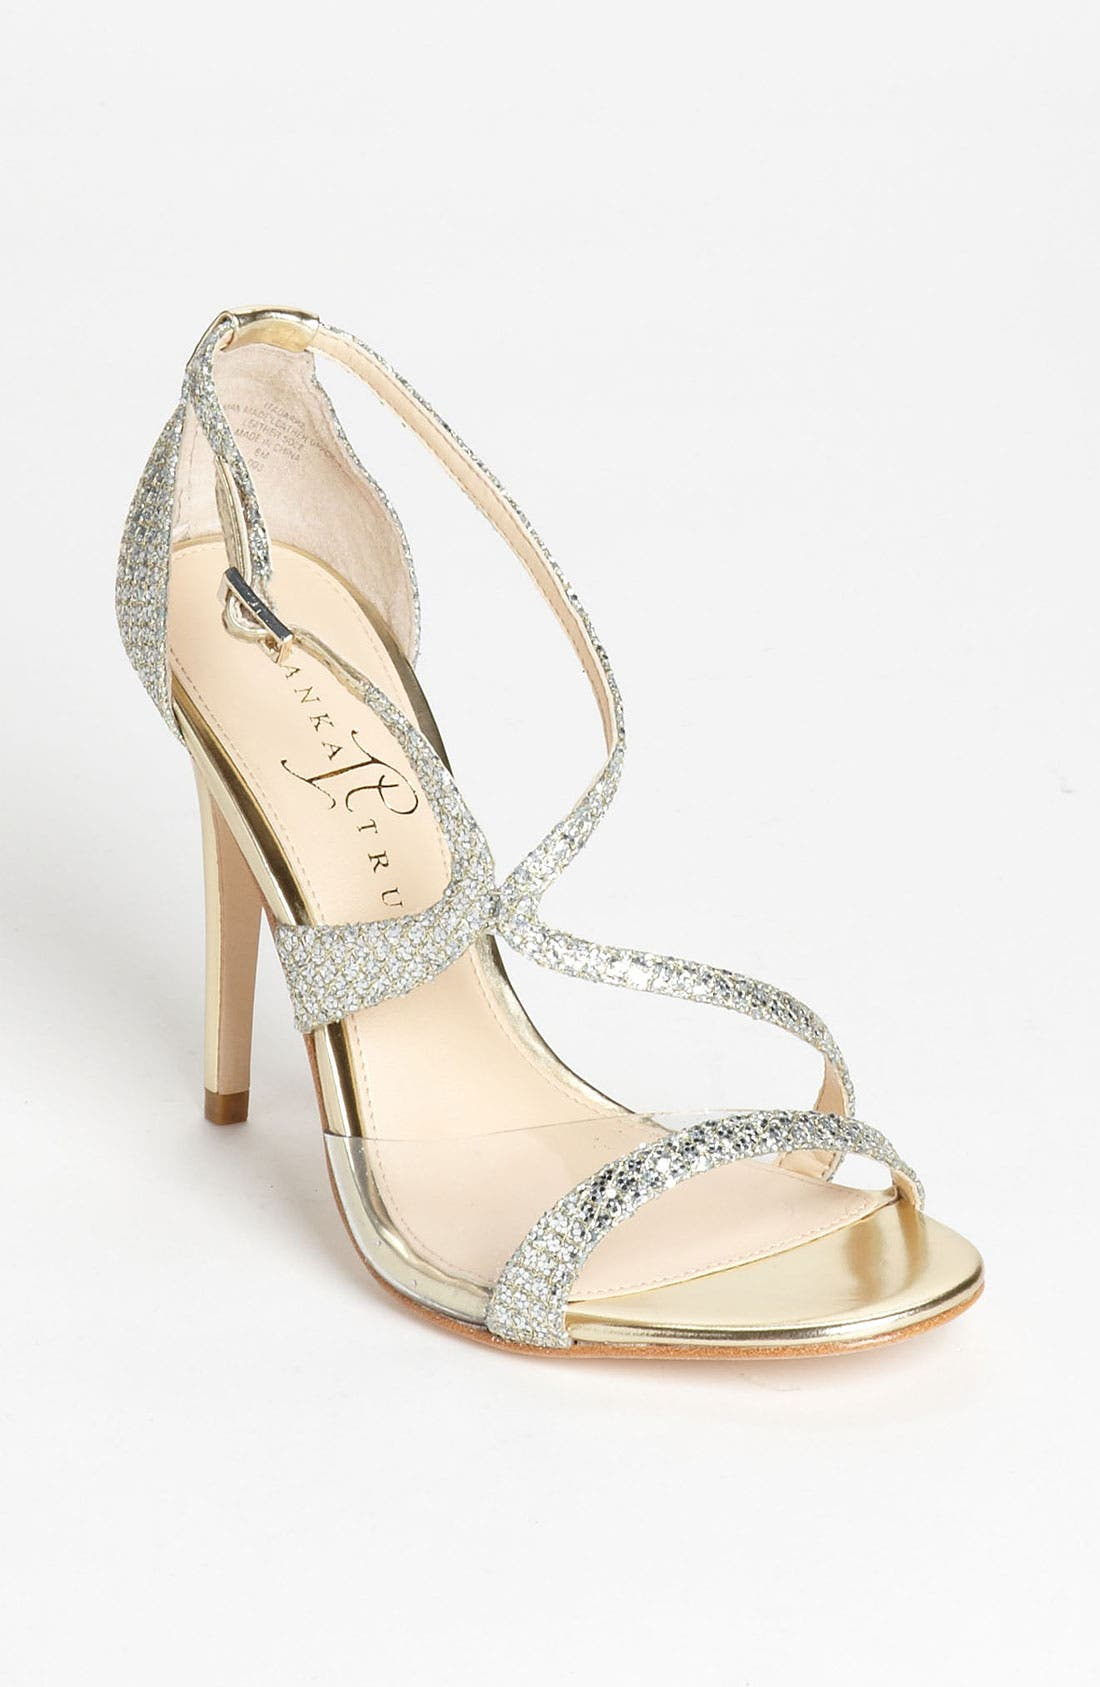 Alternate Image 1 Selected - IVANKA TRUMP ADARA SANDAL